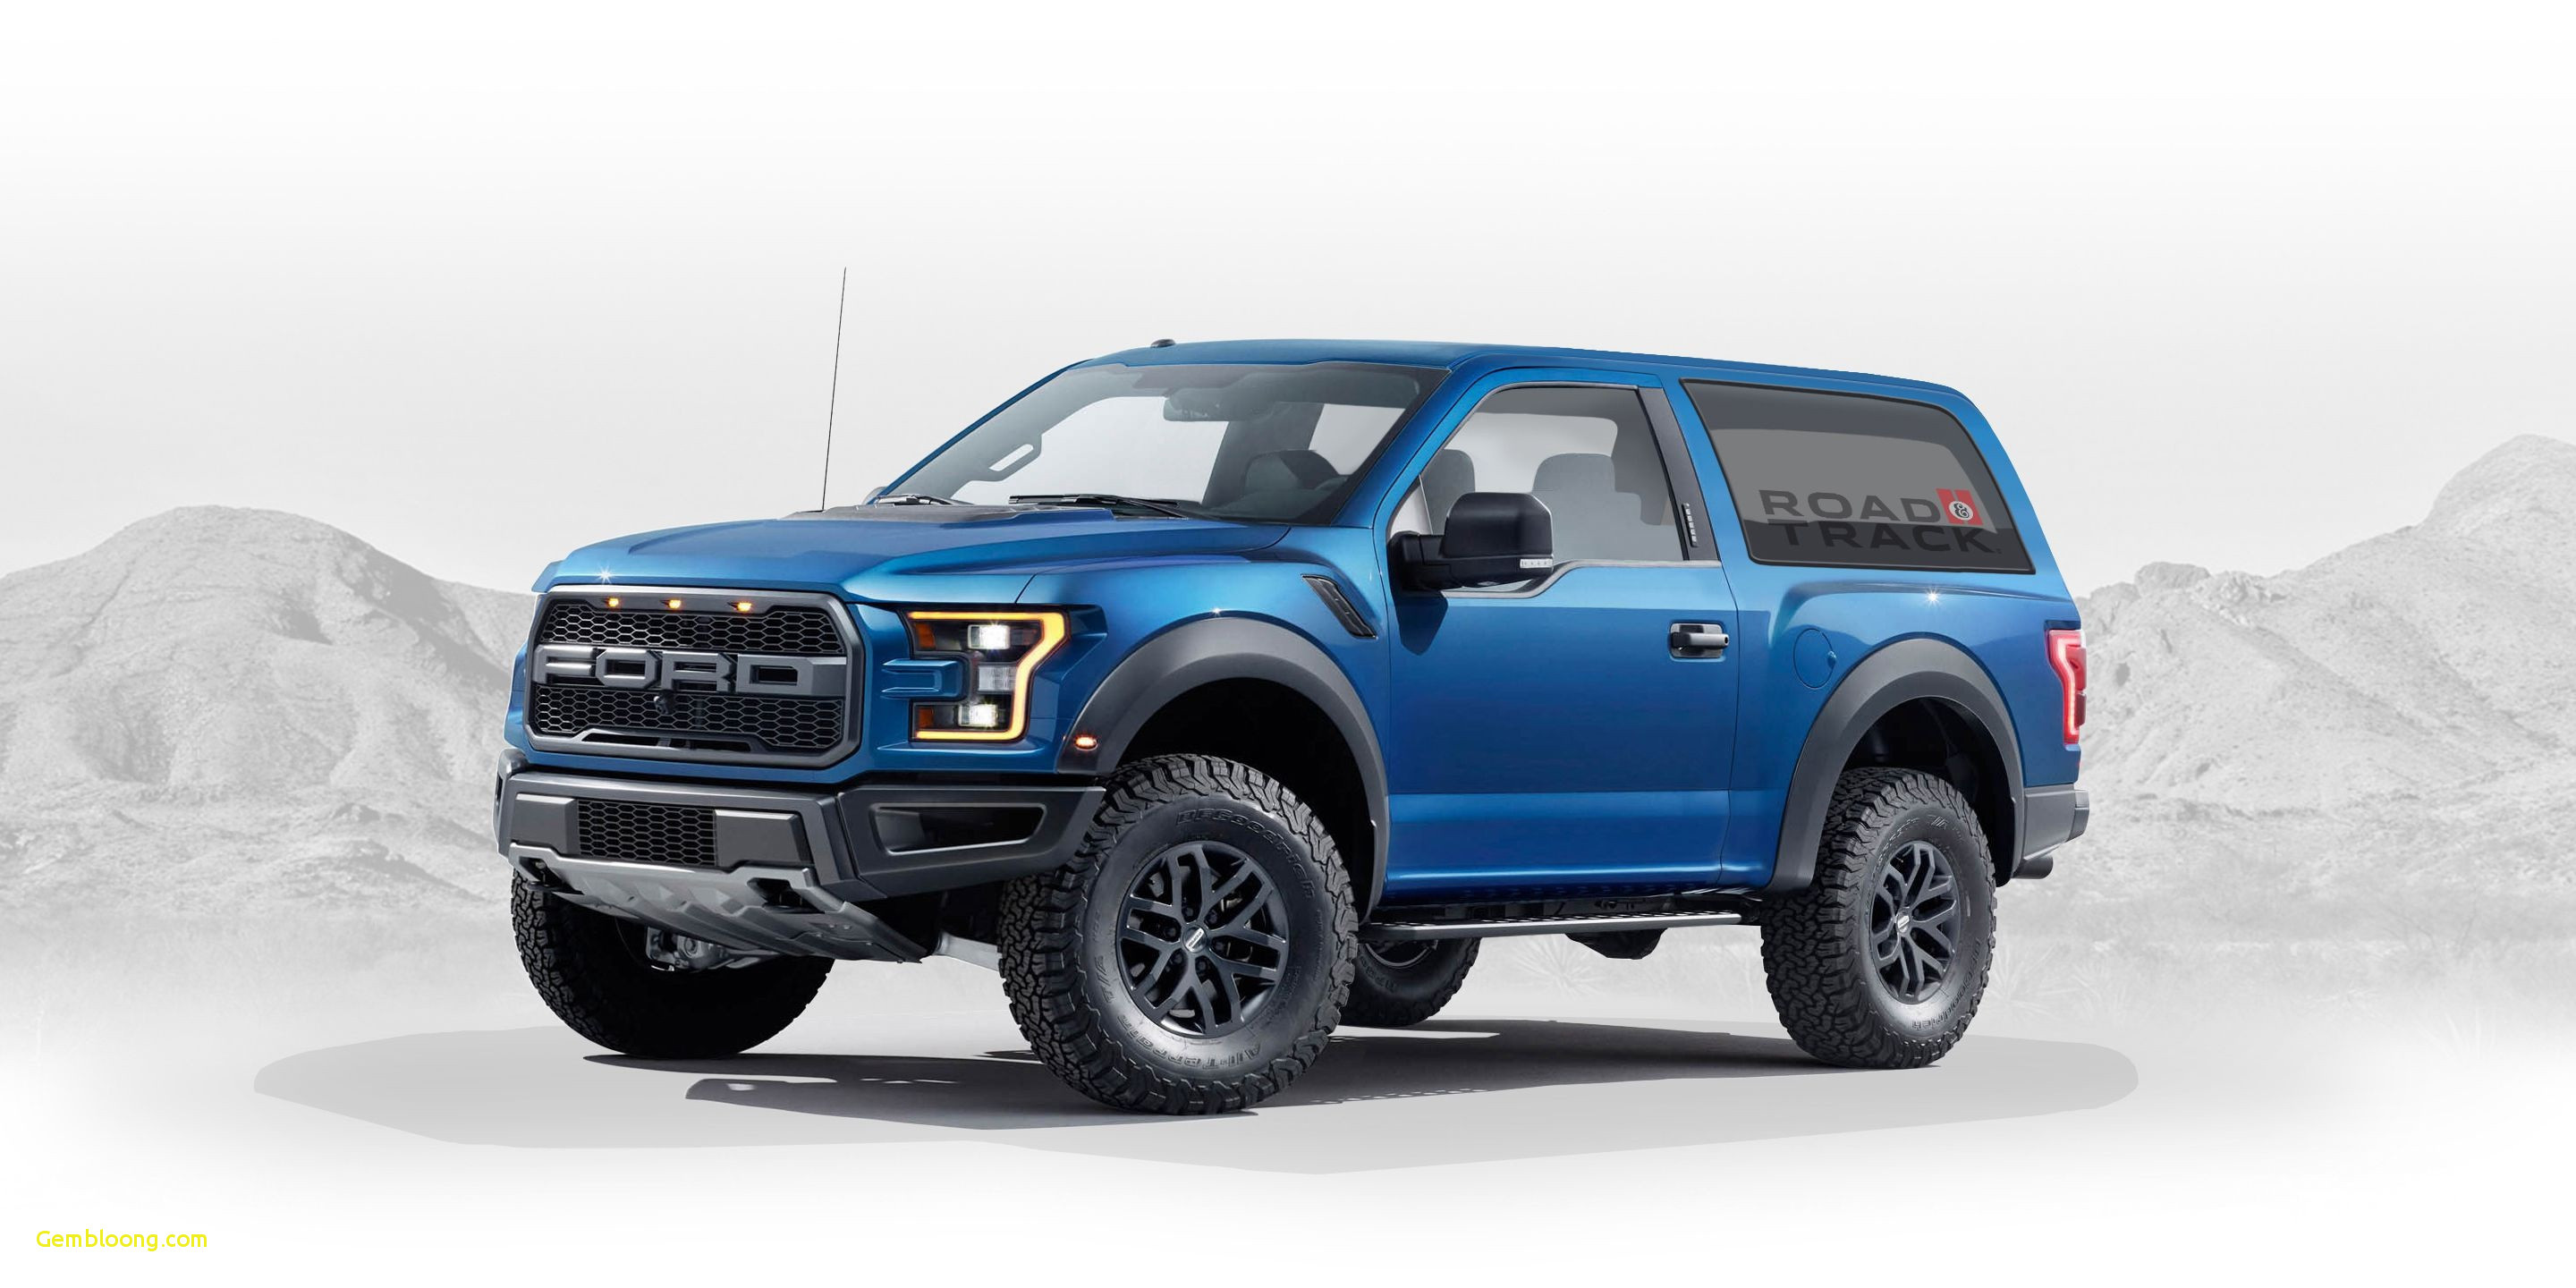 37 New 2020 Ford F150 Raptor Mpg Reviews